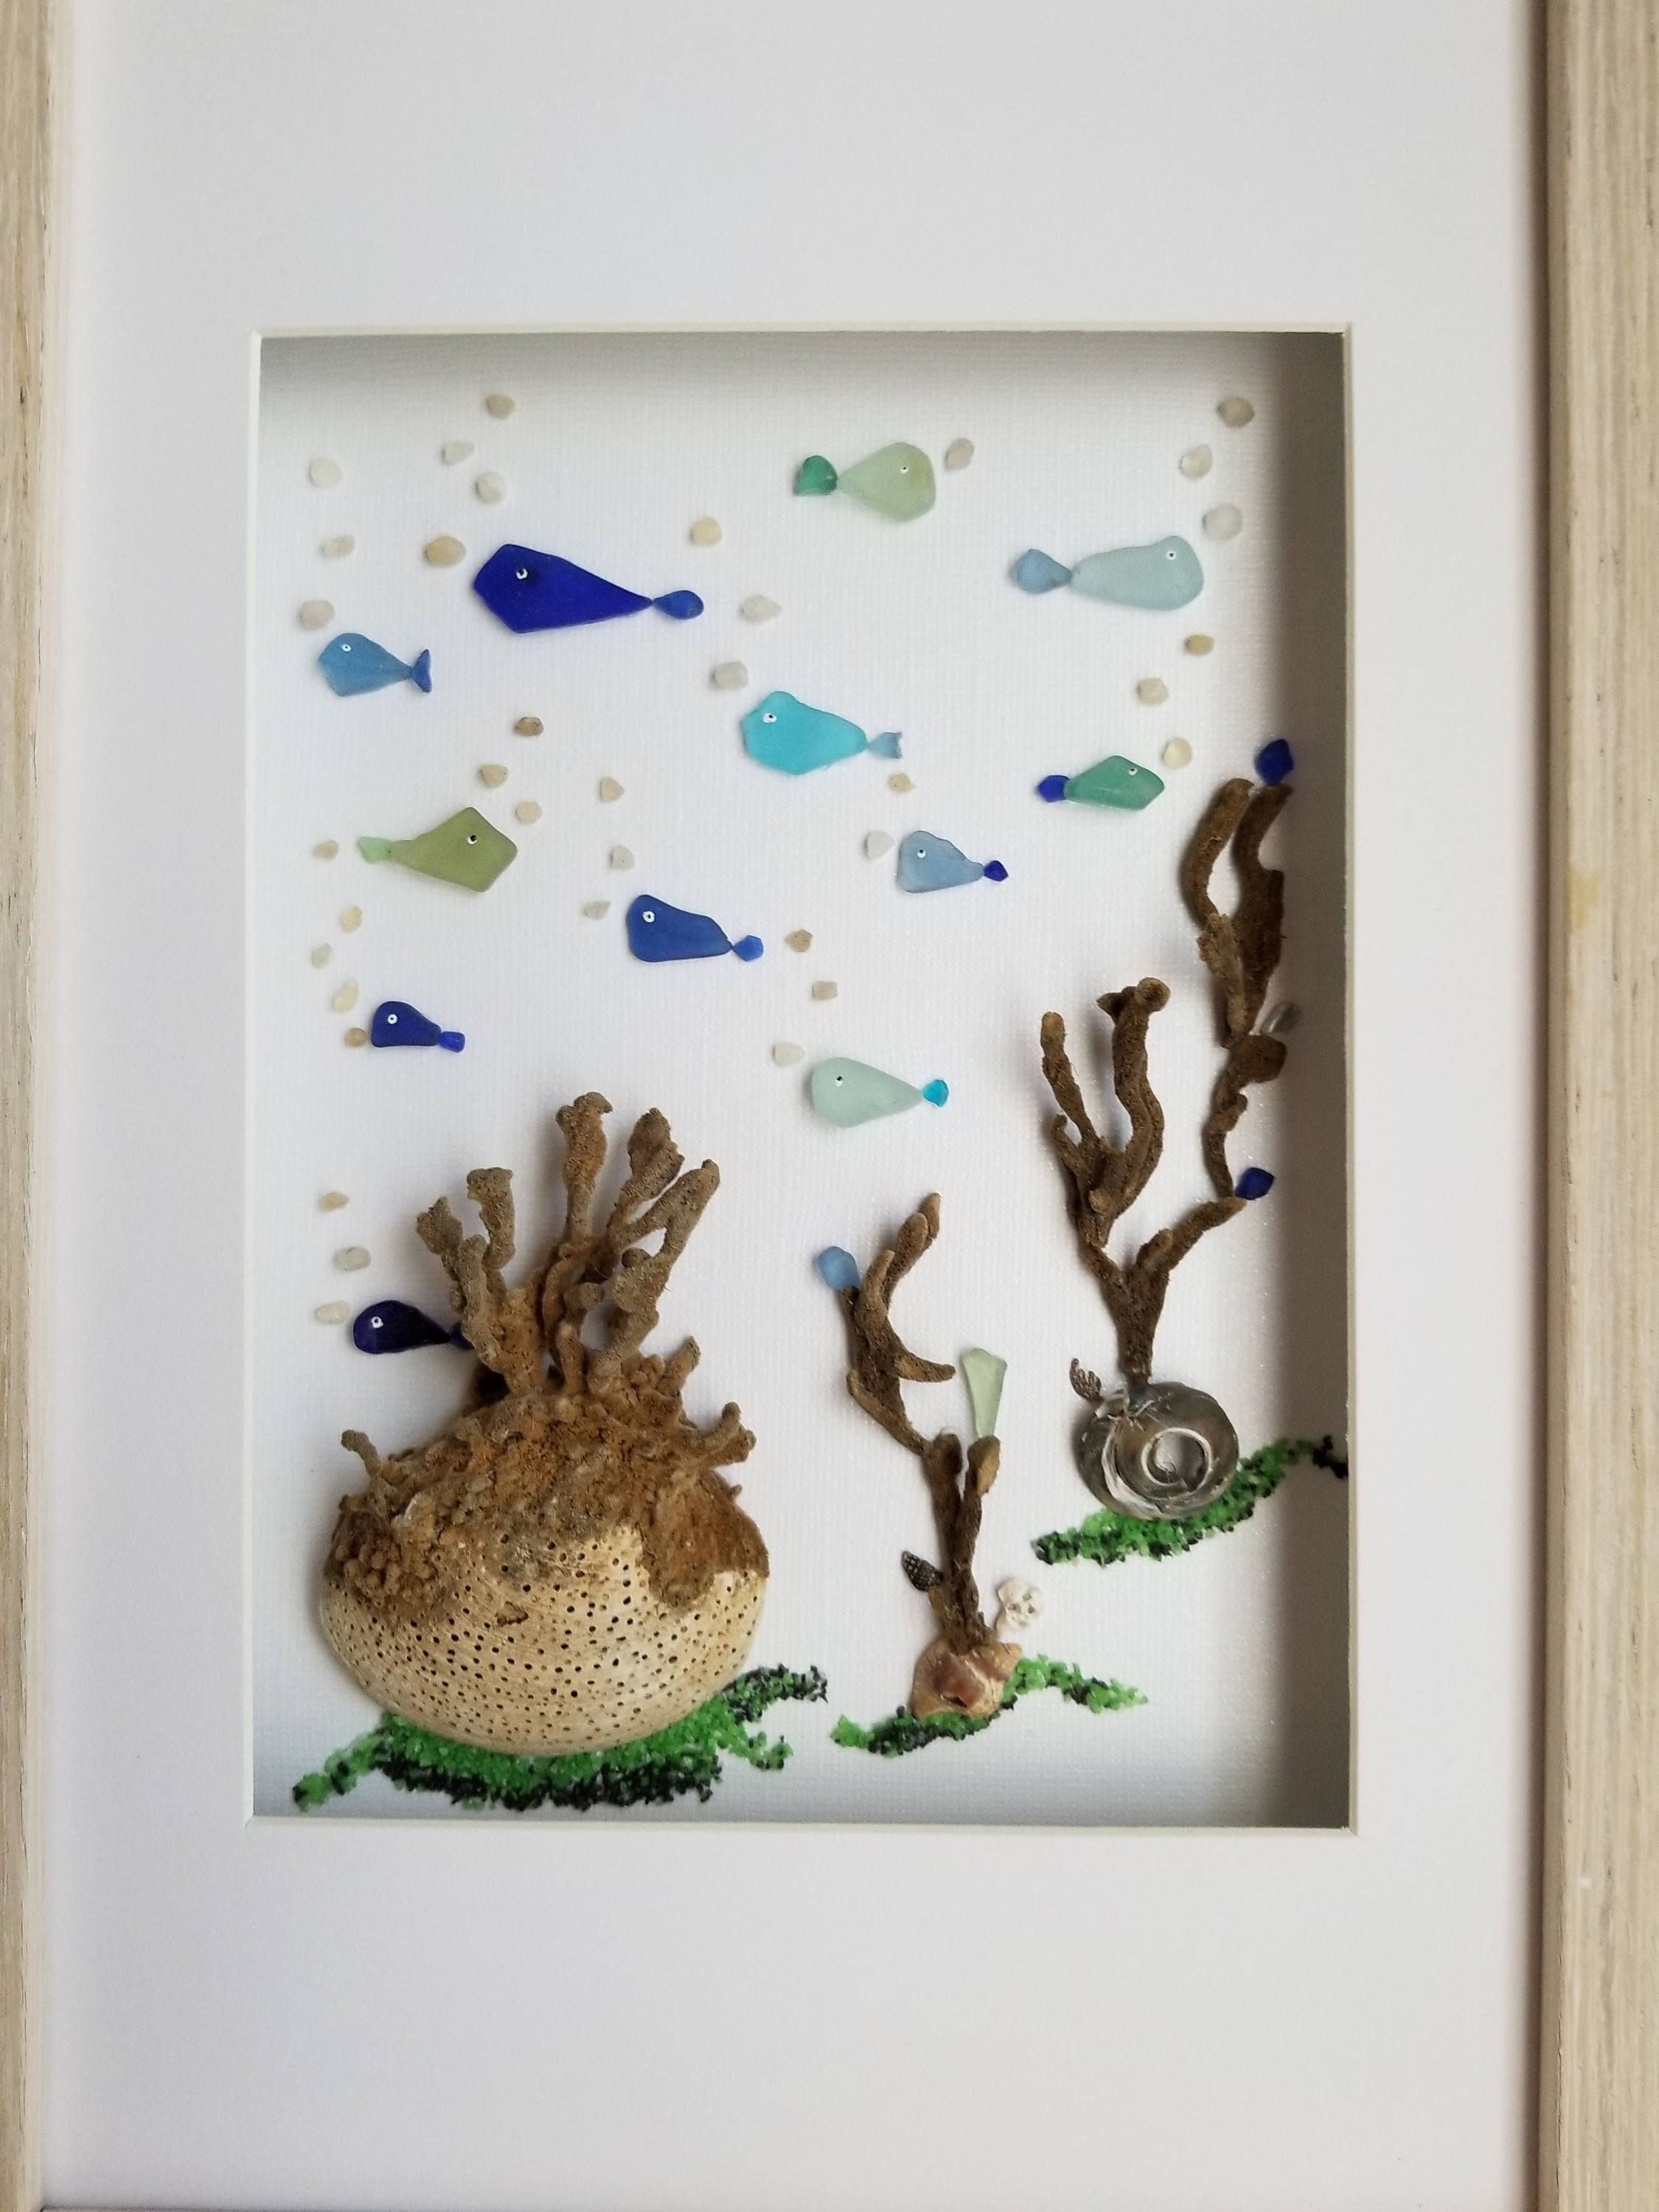 Sea Glass Art, Framed Sea Glass Bathroom Wall Decor, Costal Decor Throughout Newest Sea Glass Wall Art (View 7 of 15)